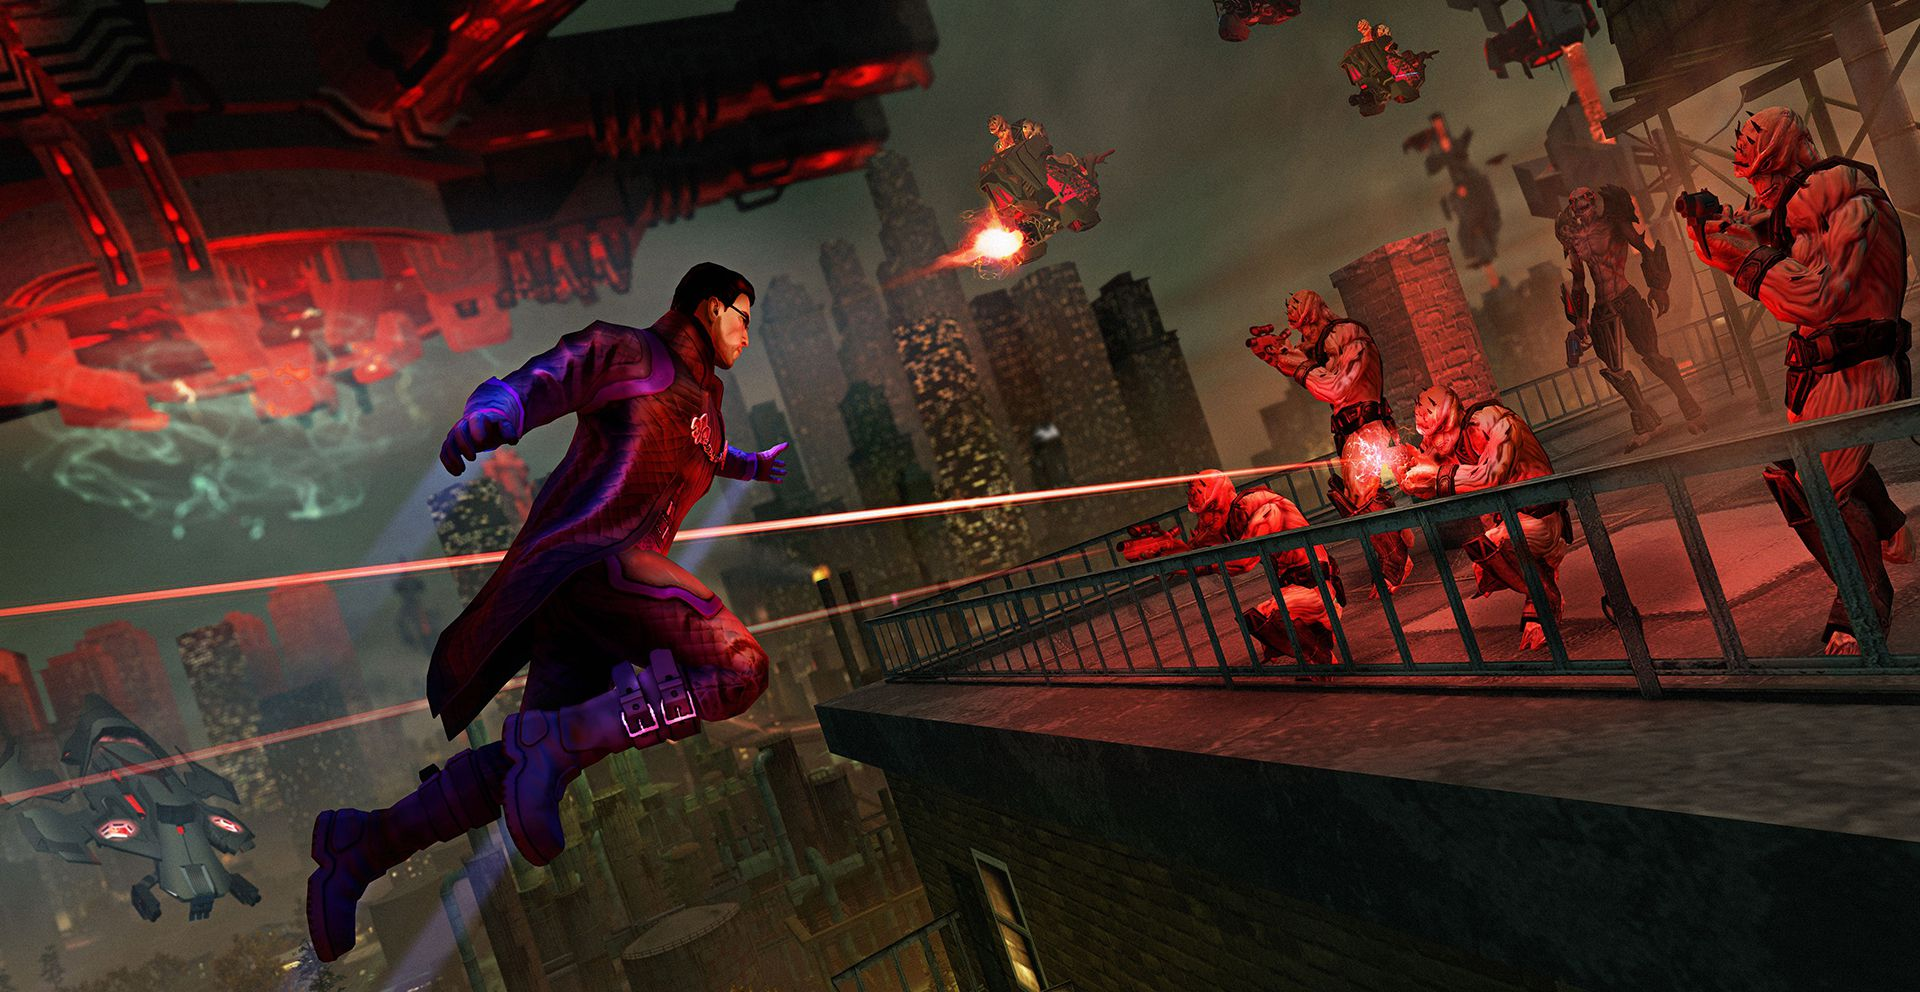 Publicity still for Saints Row IV